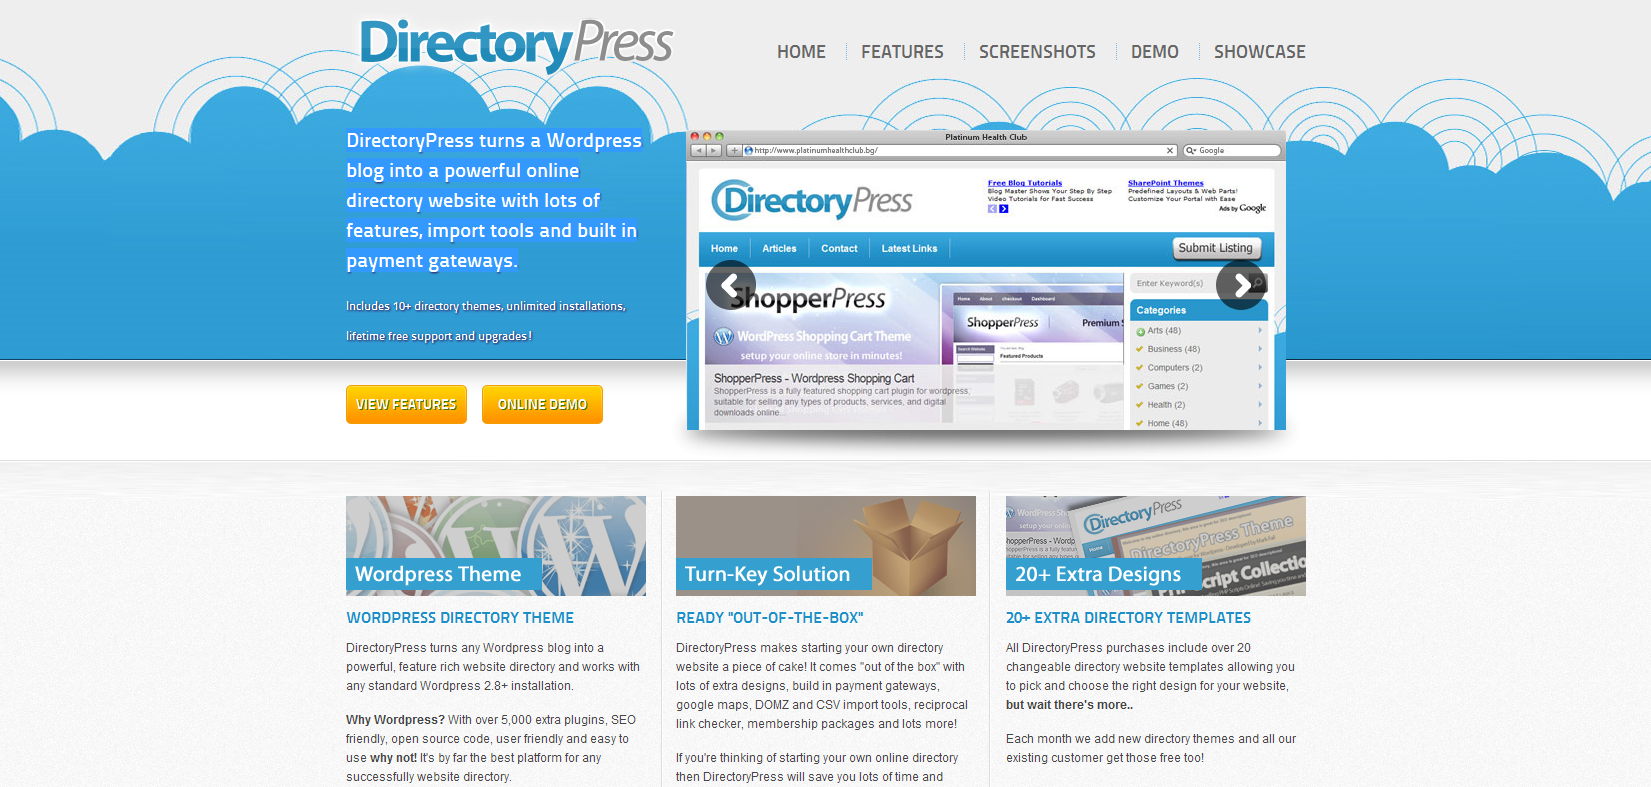 Directory Press - Directory theme for Wordpress